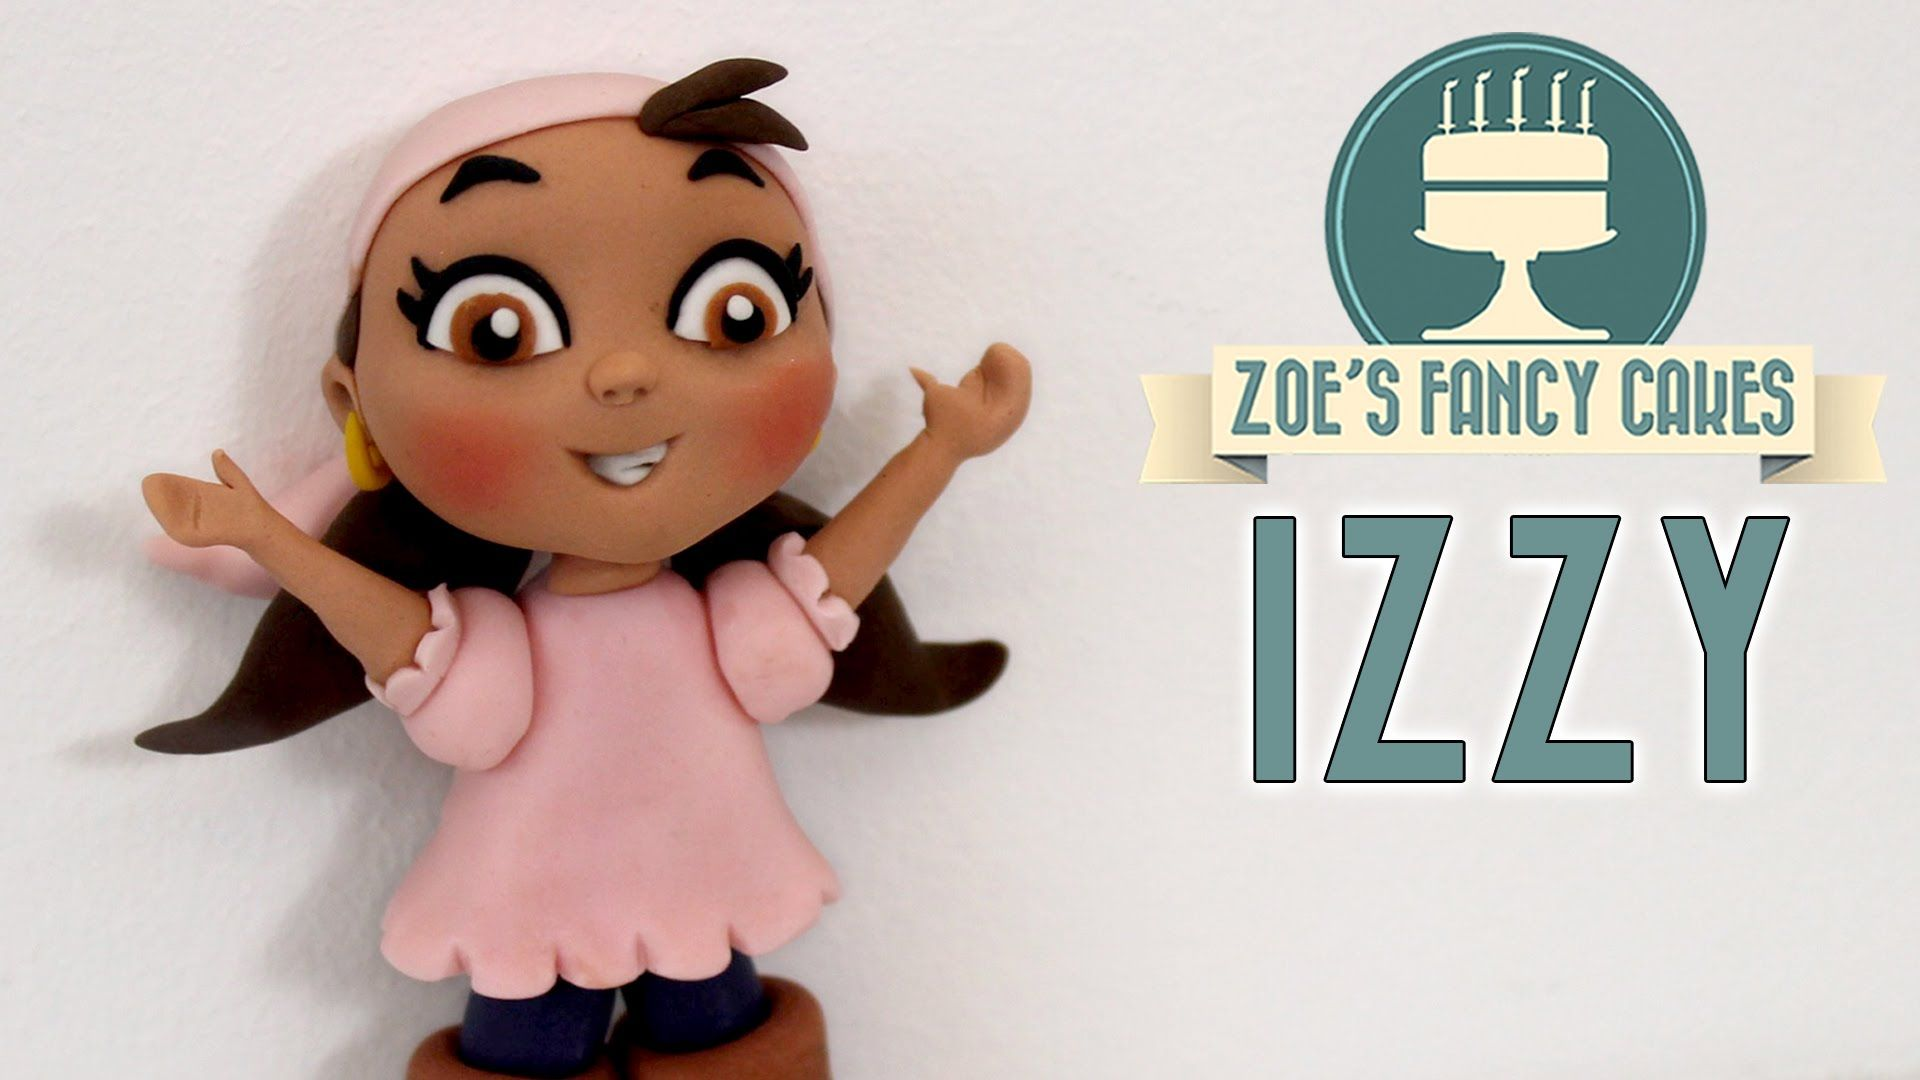 How to Make an Izzy model from Jake and the Never Land Pirates I use